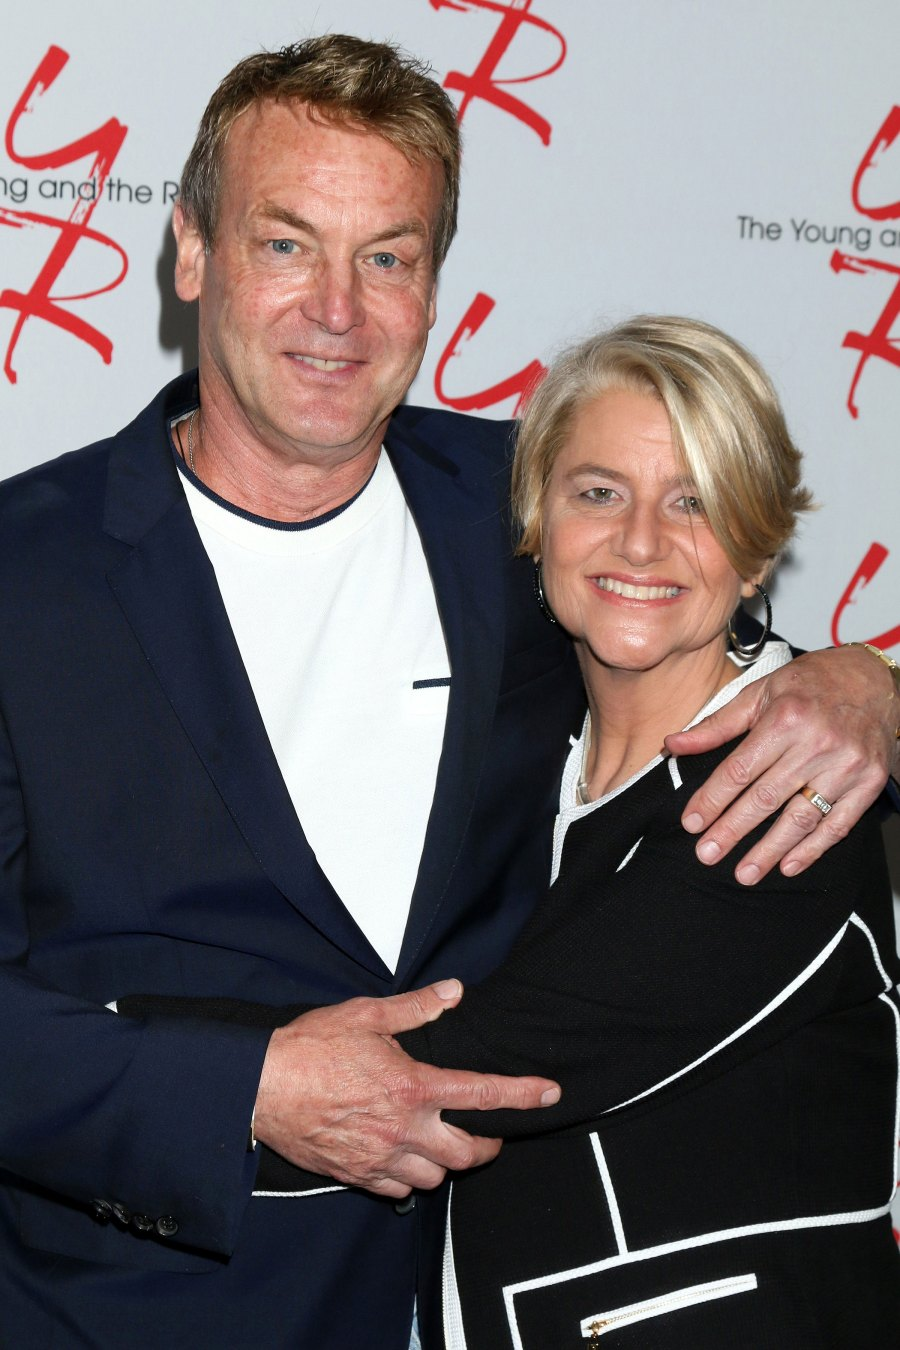 Doug Davidson and Cindy Fisher Soap Stars Who Dated Offscreen